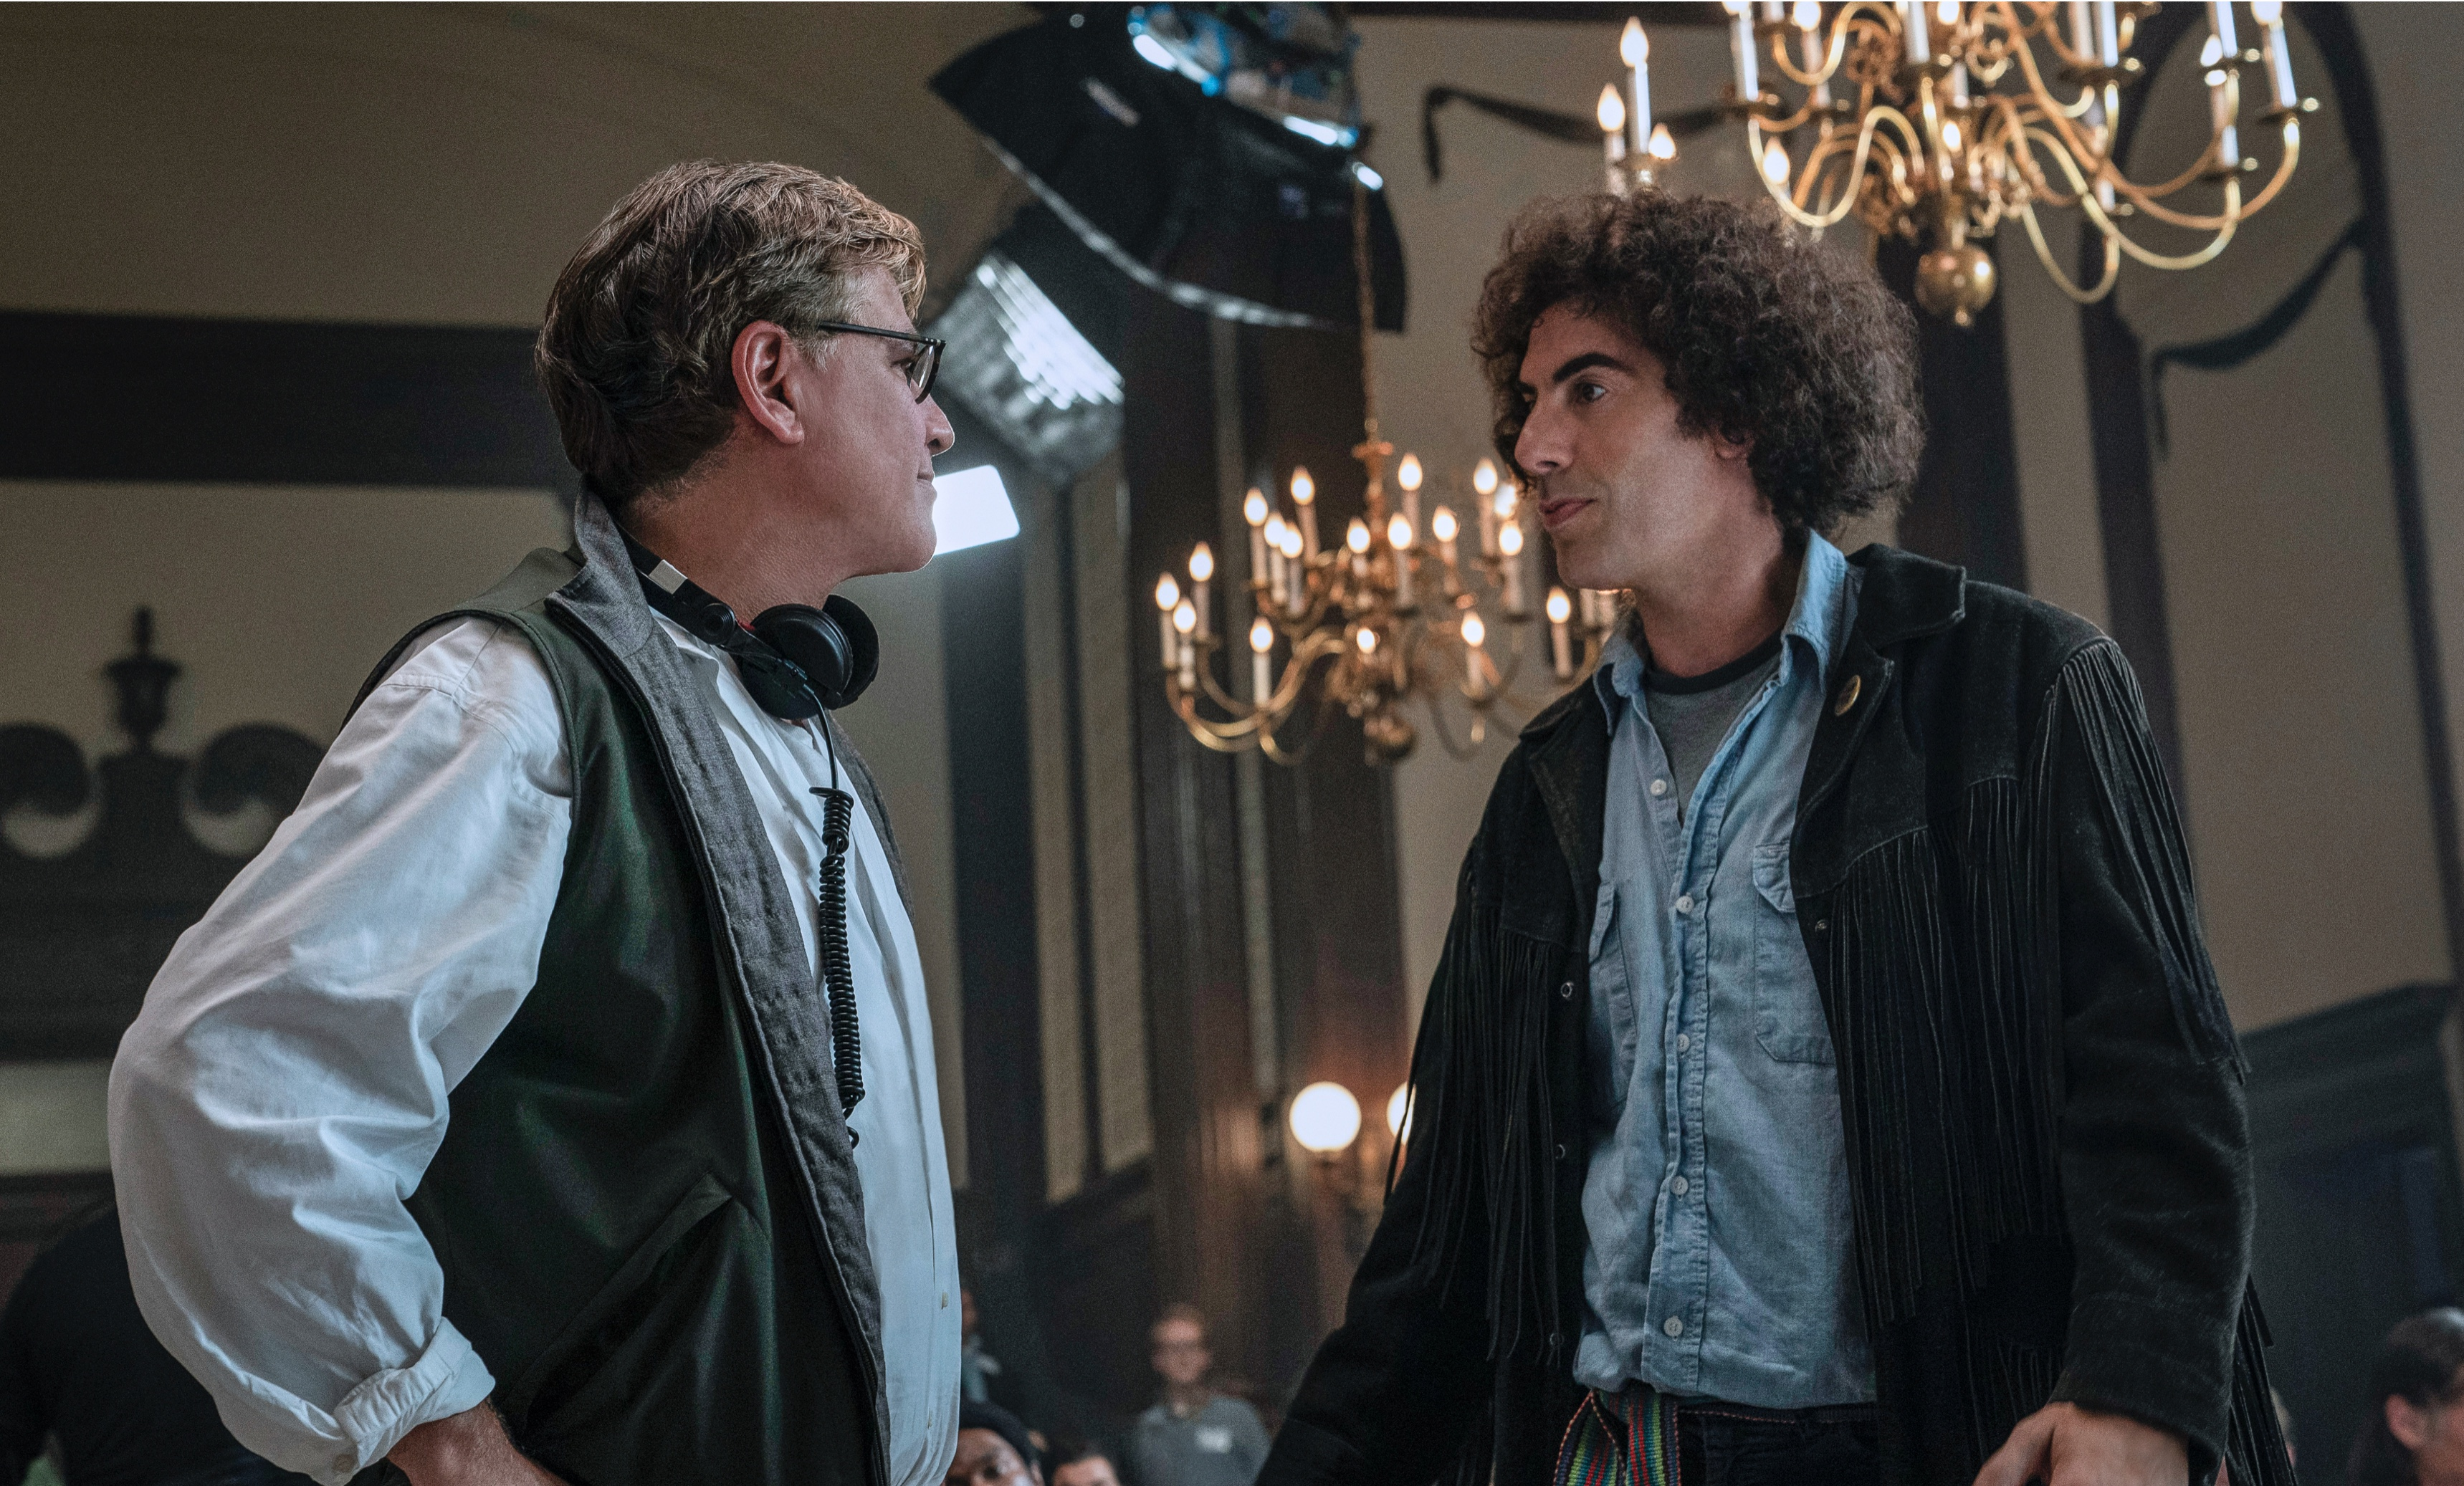 Aaron Sorkin directs Sacha Baron Cohen between takes for The Trial of the Chicago 7.